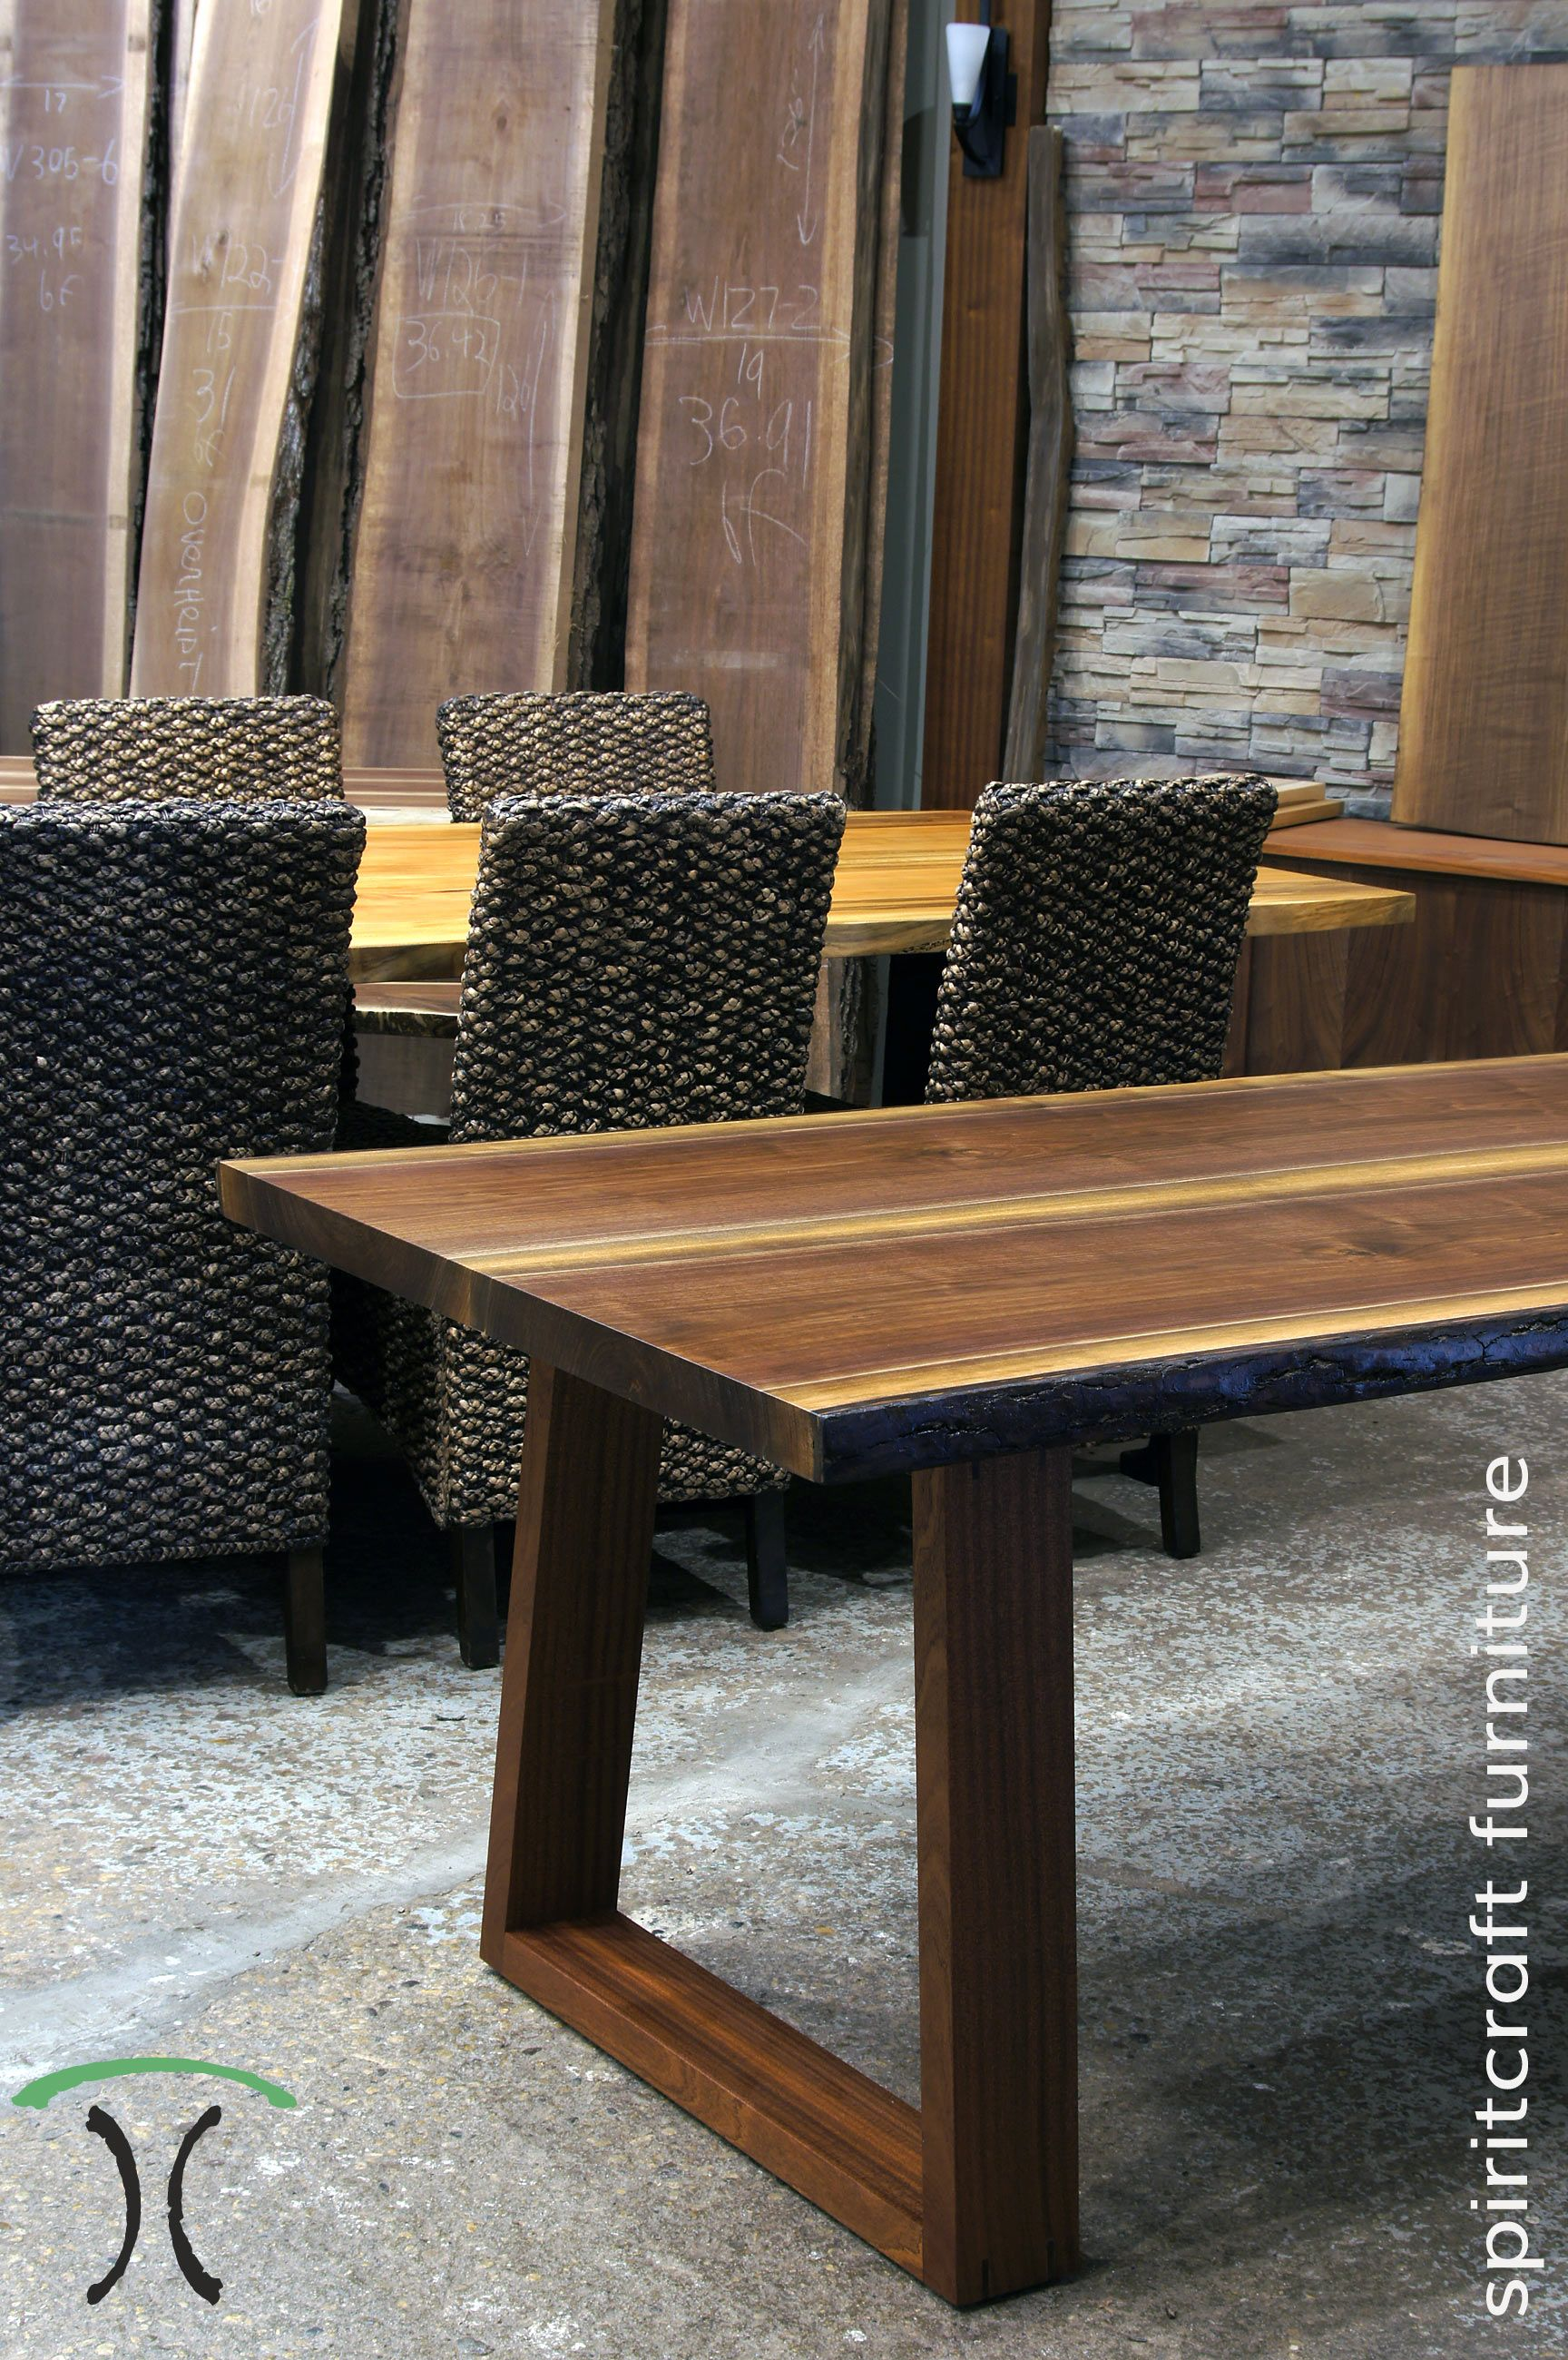 Live edge dining and conference tables in solid black walnut and sycamore with live edge kiln dried slabs on hardwood and cast iron legs on display at our